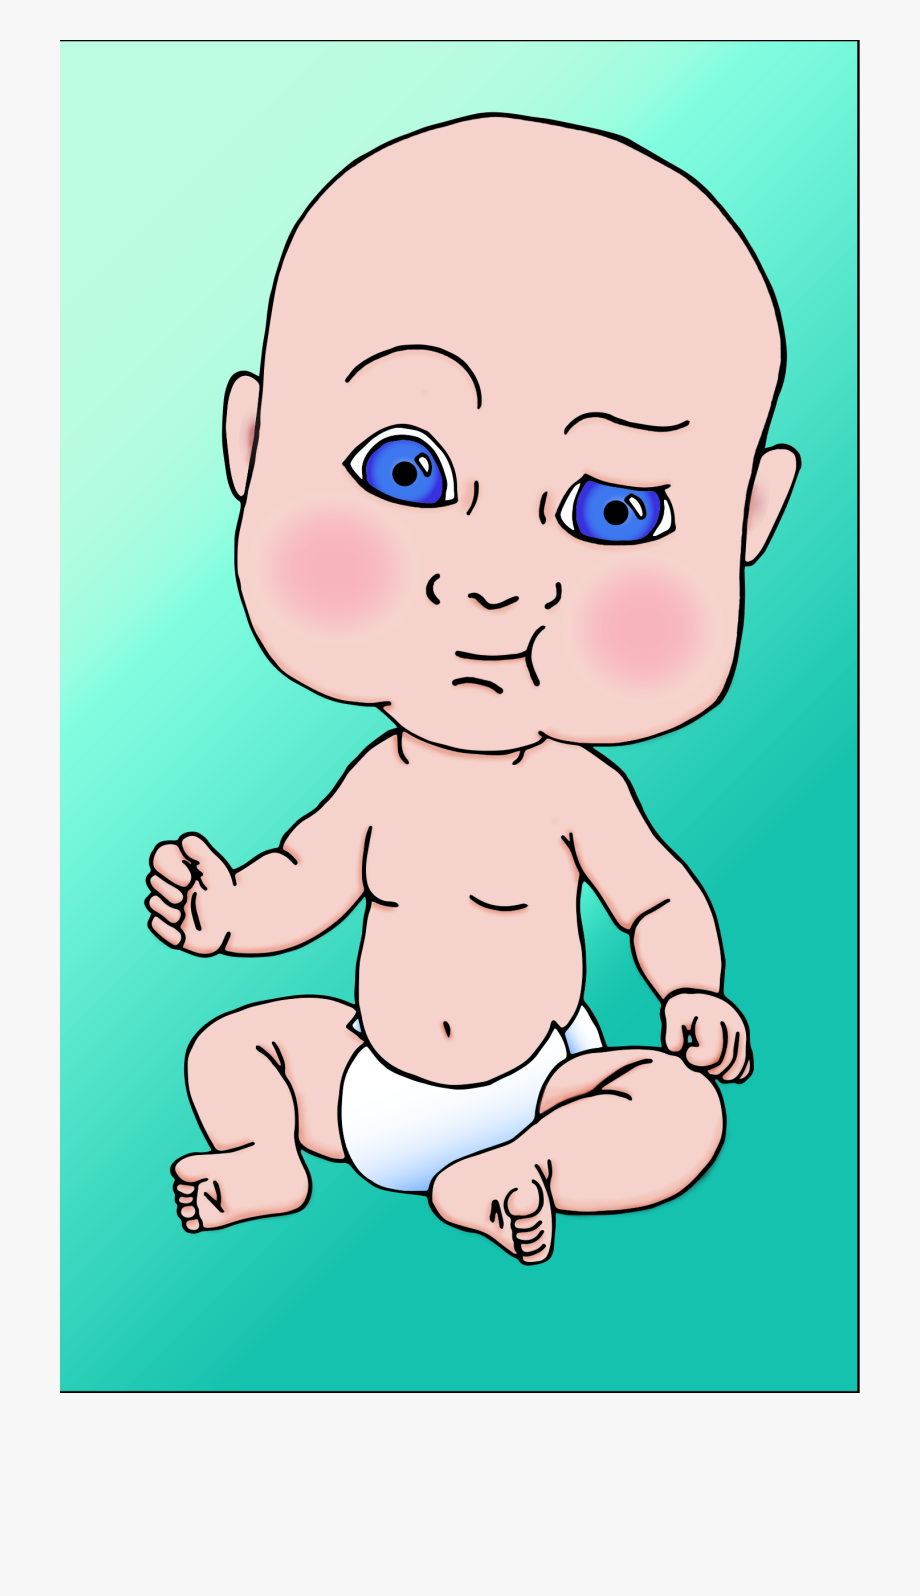 Baby with large head clipart jpg black and white Baby Head Png - Big Head Baby Cartoon, Cliparts & Cartoons - Jing.fm jpg black and white